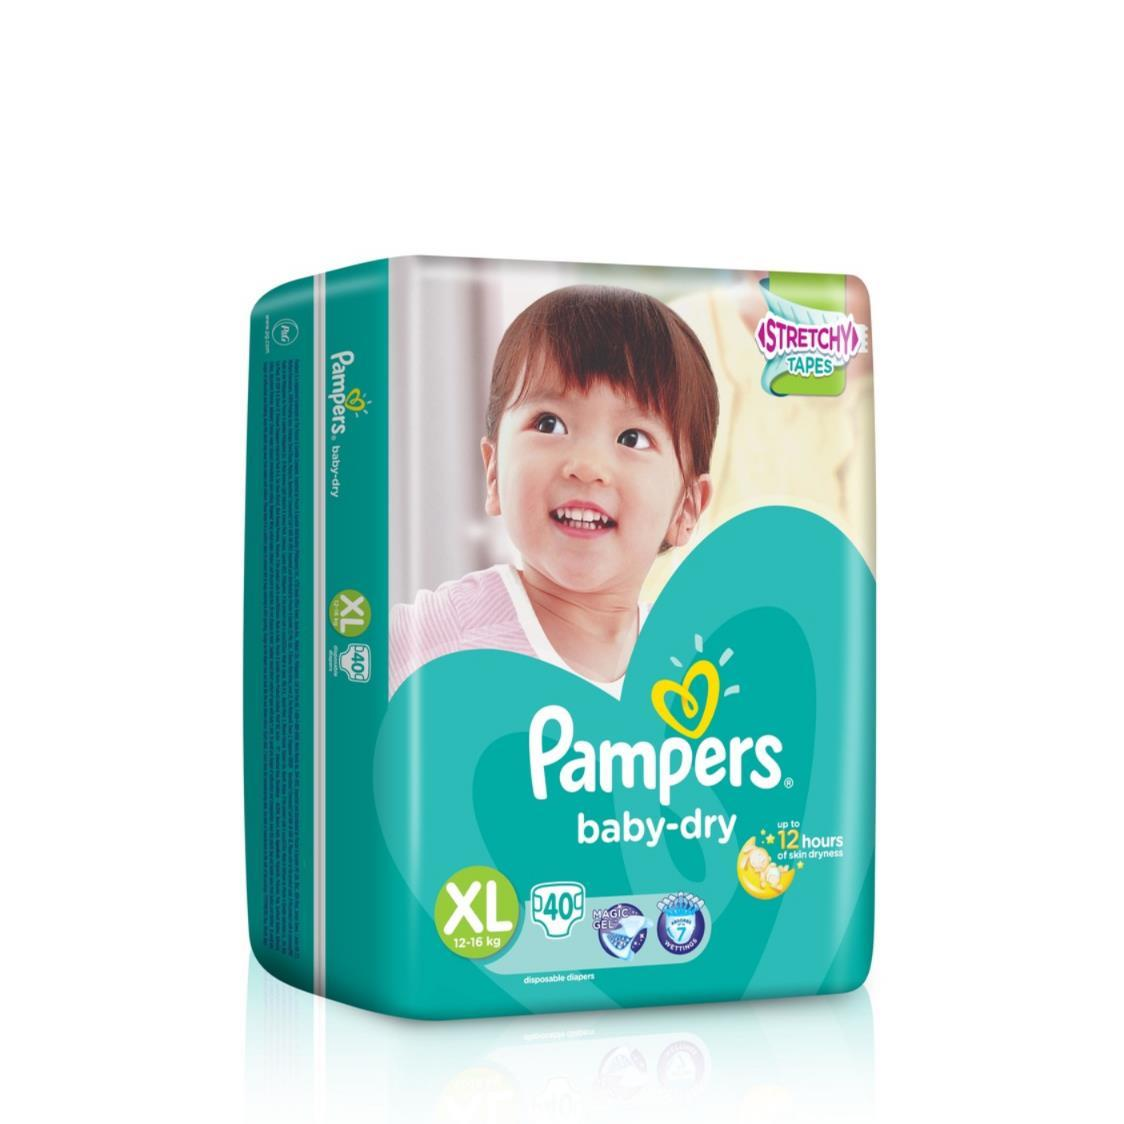 Pampers Baby Dry Diapers XL 40s 12-16kg